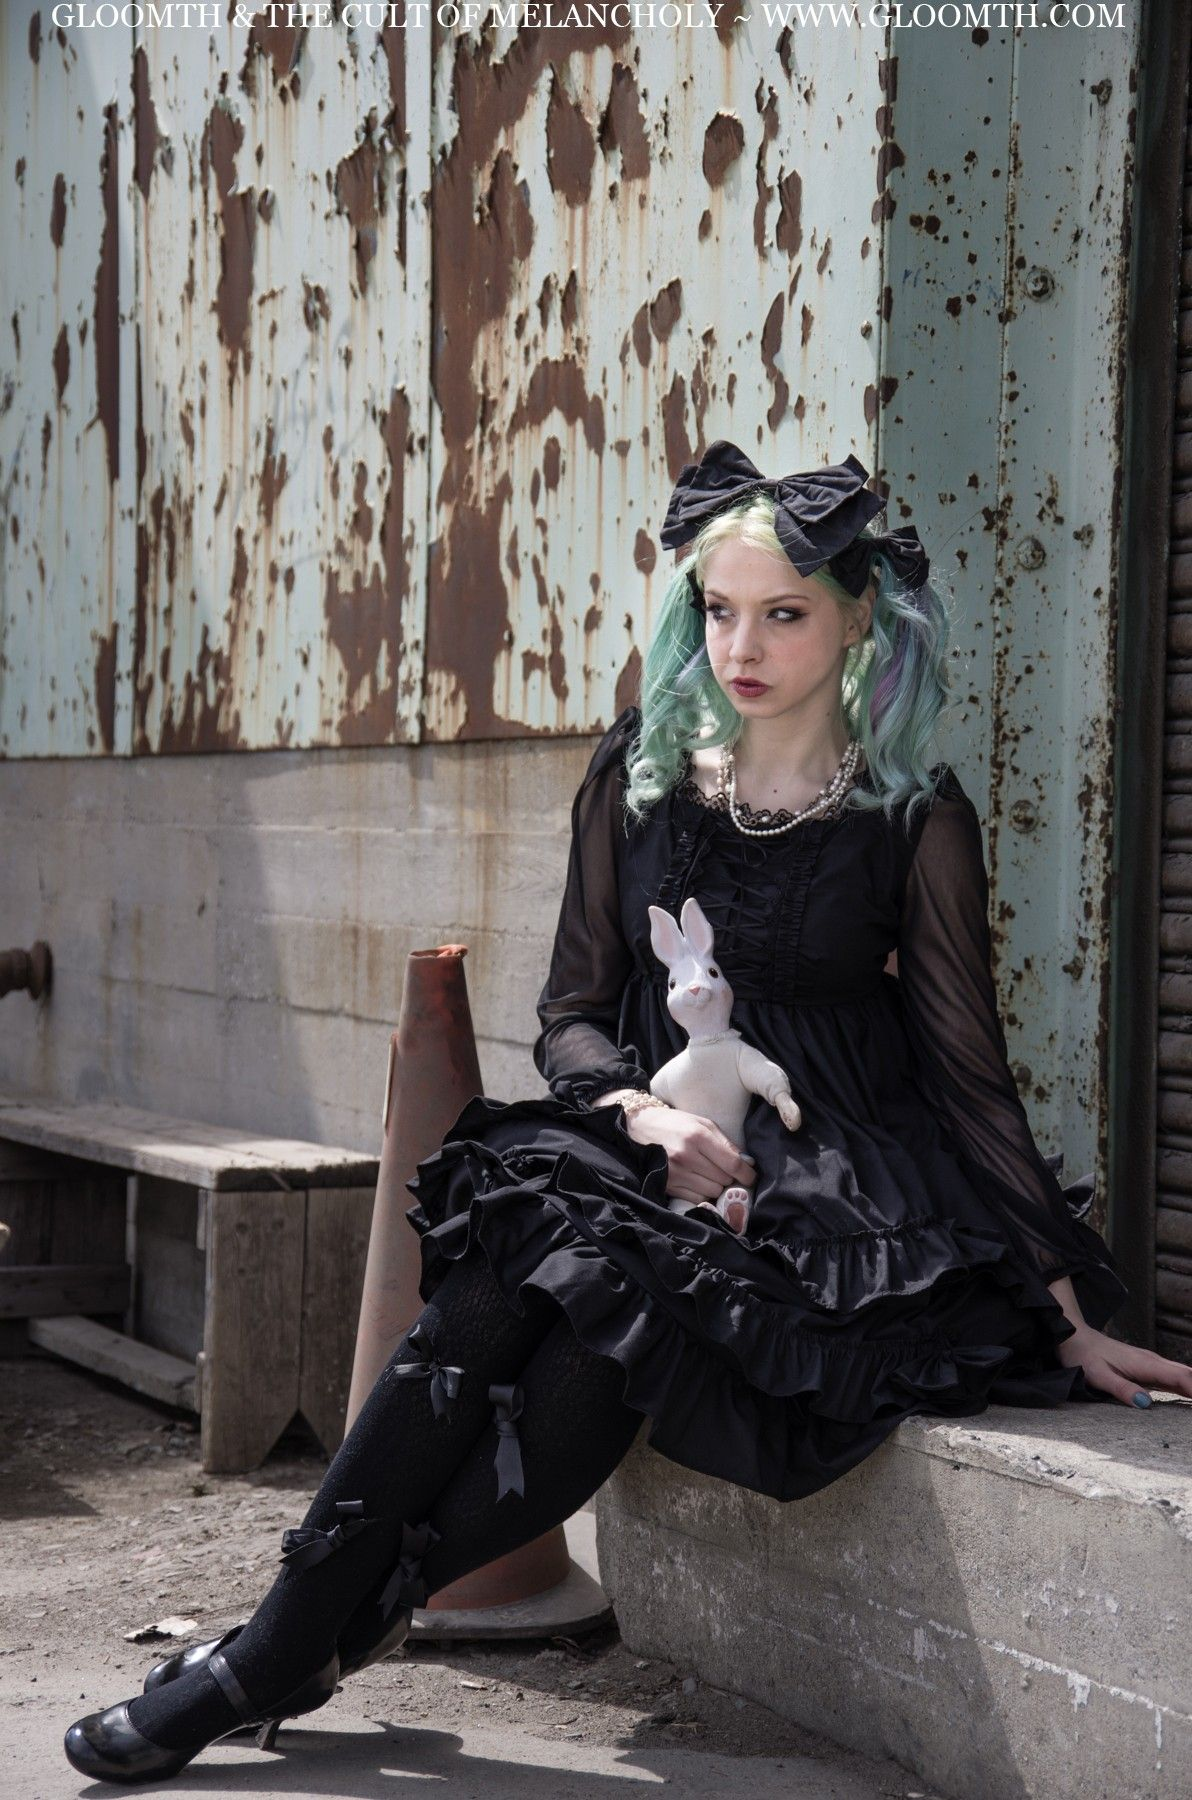 ab5f5417307 Gloomth   the Cult of Melancholy. cool 30+ Amazing Goth Photoshoot Ideas